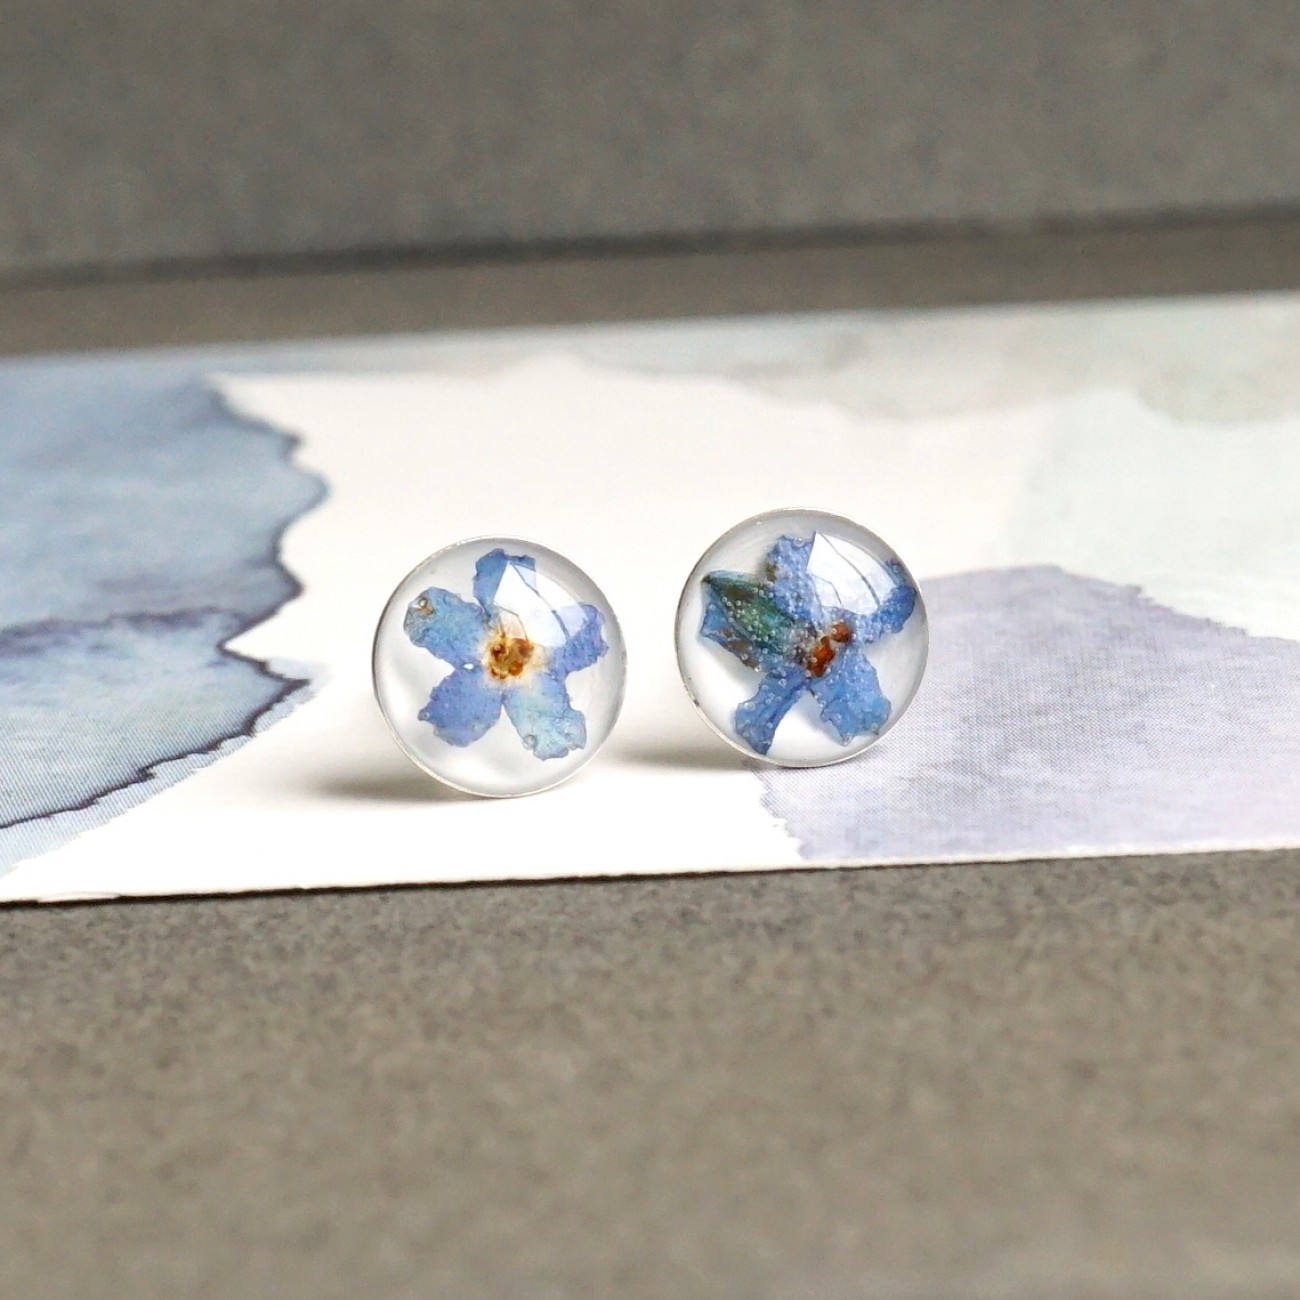 6805c0a06 Unique Pebs jewelry, sterling silver earrings with real Myosotis sylvatica  blue flowers preserved in resin, on a white background. Designed by adela  cremene ...